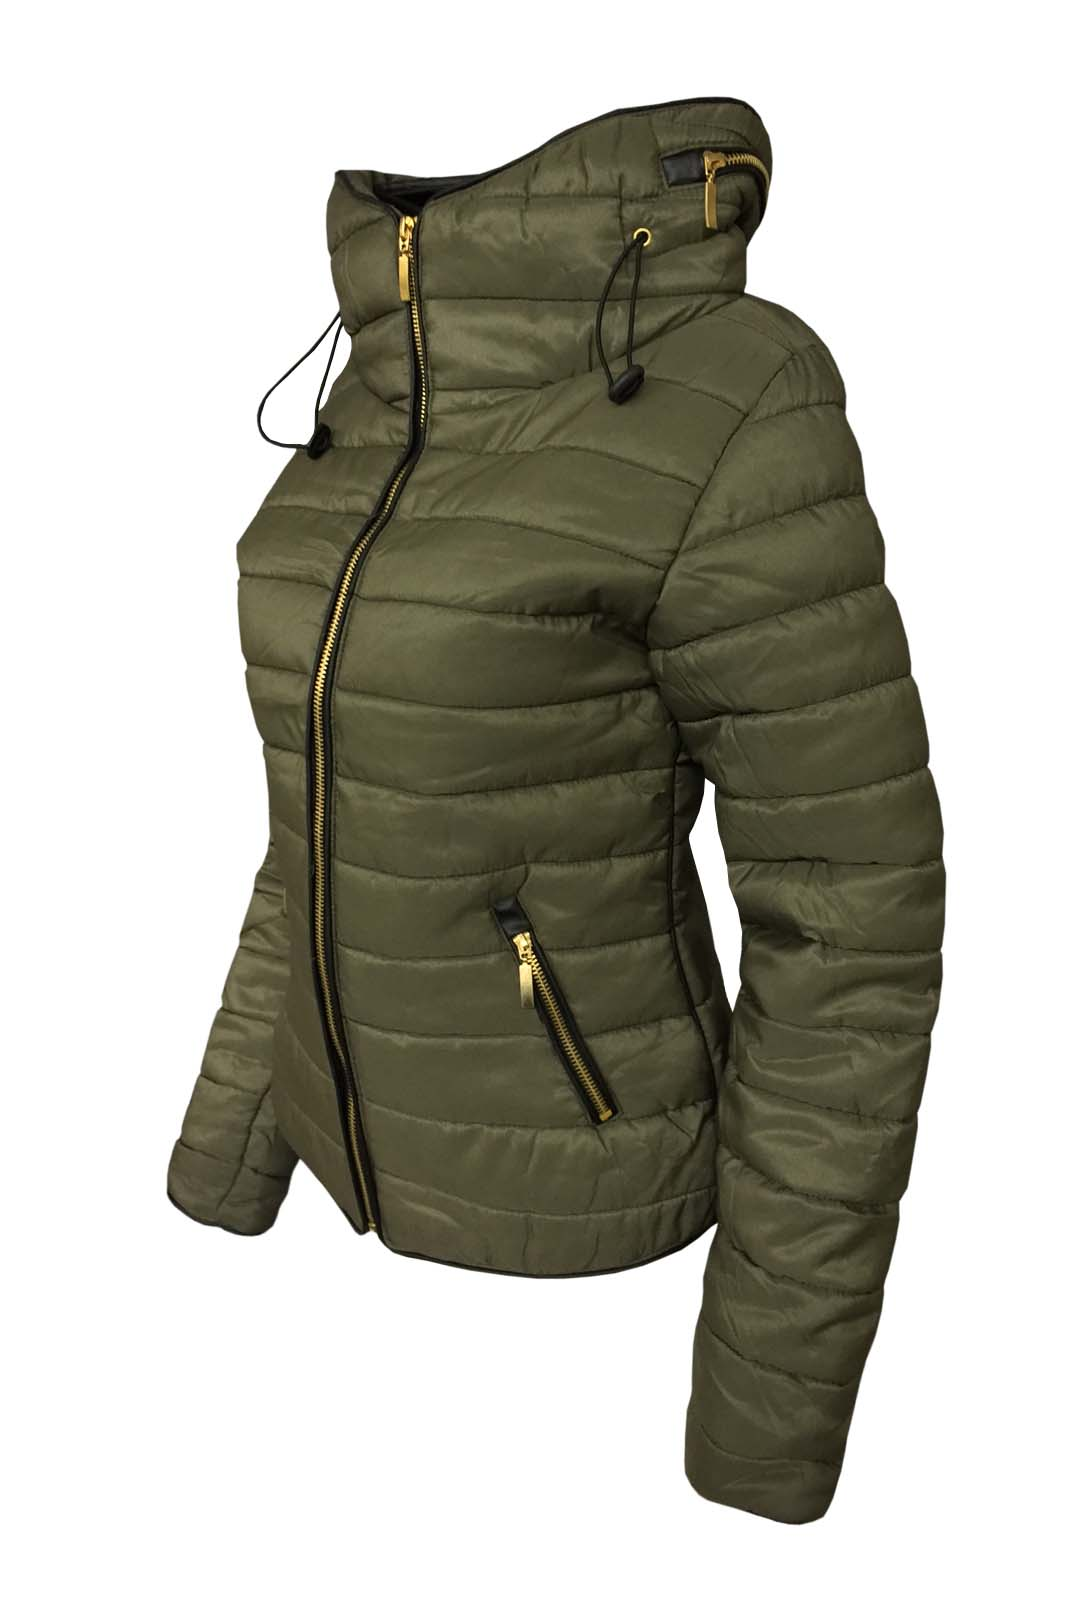 002d7d9ef543 New Ladies Padded Quilted Bomber Jacket Womens Puffer Full Sleeve ...